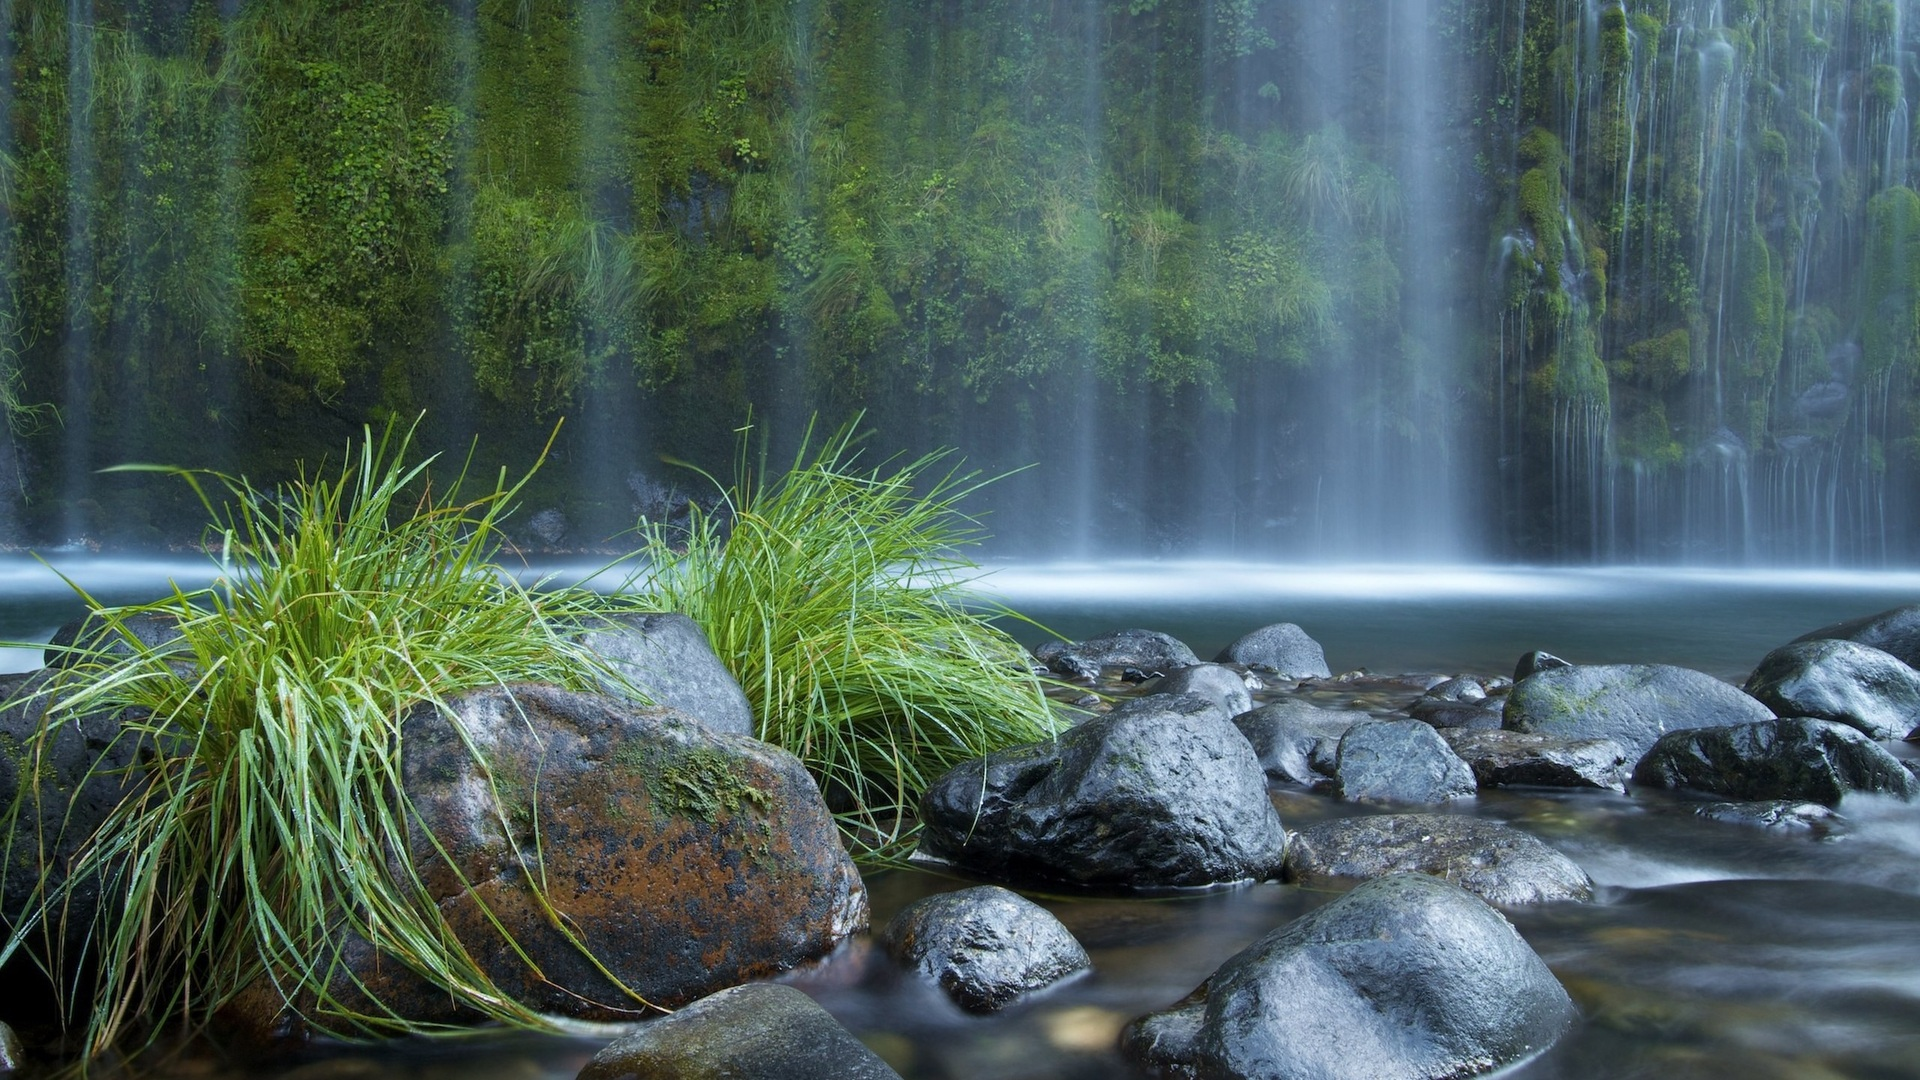 hd waterfall live wallpaper download